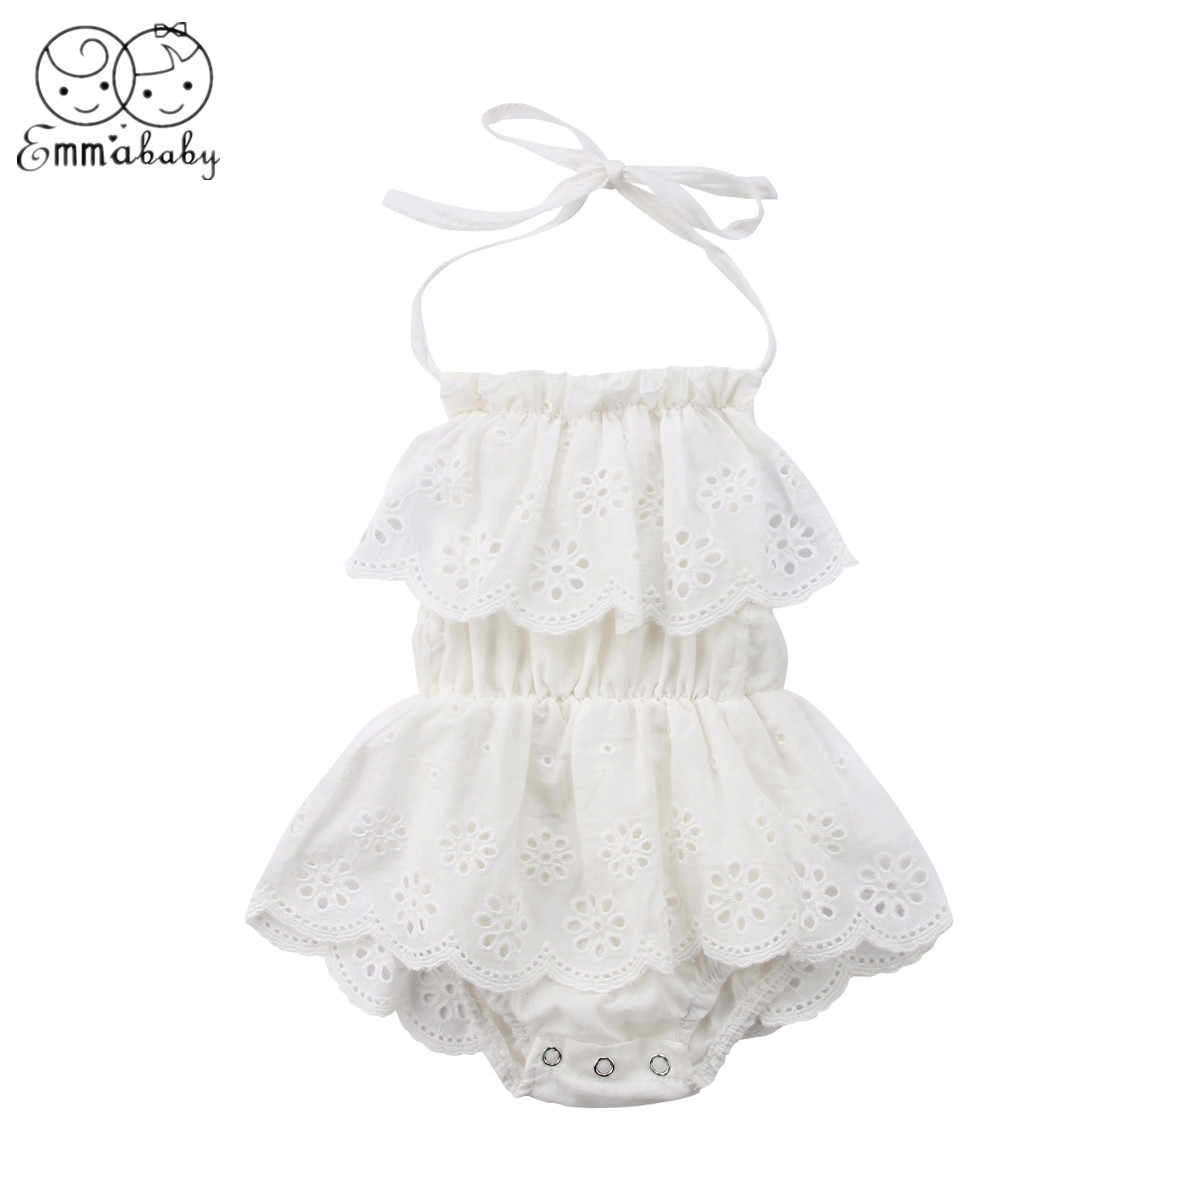 863c5219834 2019 Brand New 0-2T Cute Style Floral Ruffles Bodysuit Newborn Infant Baby  Girl Outfits